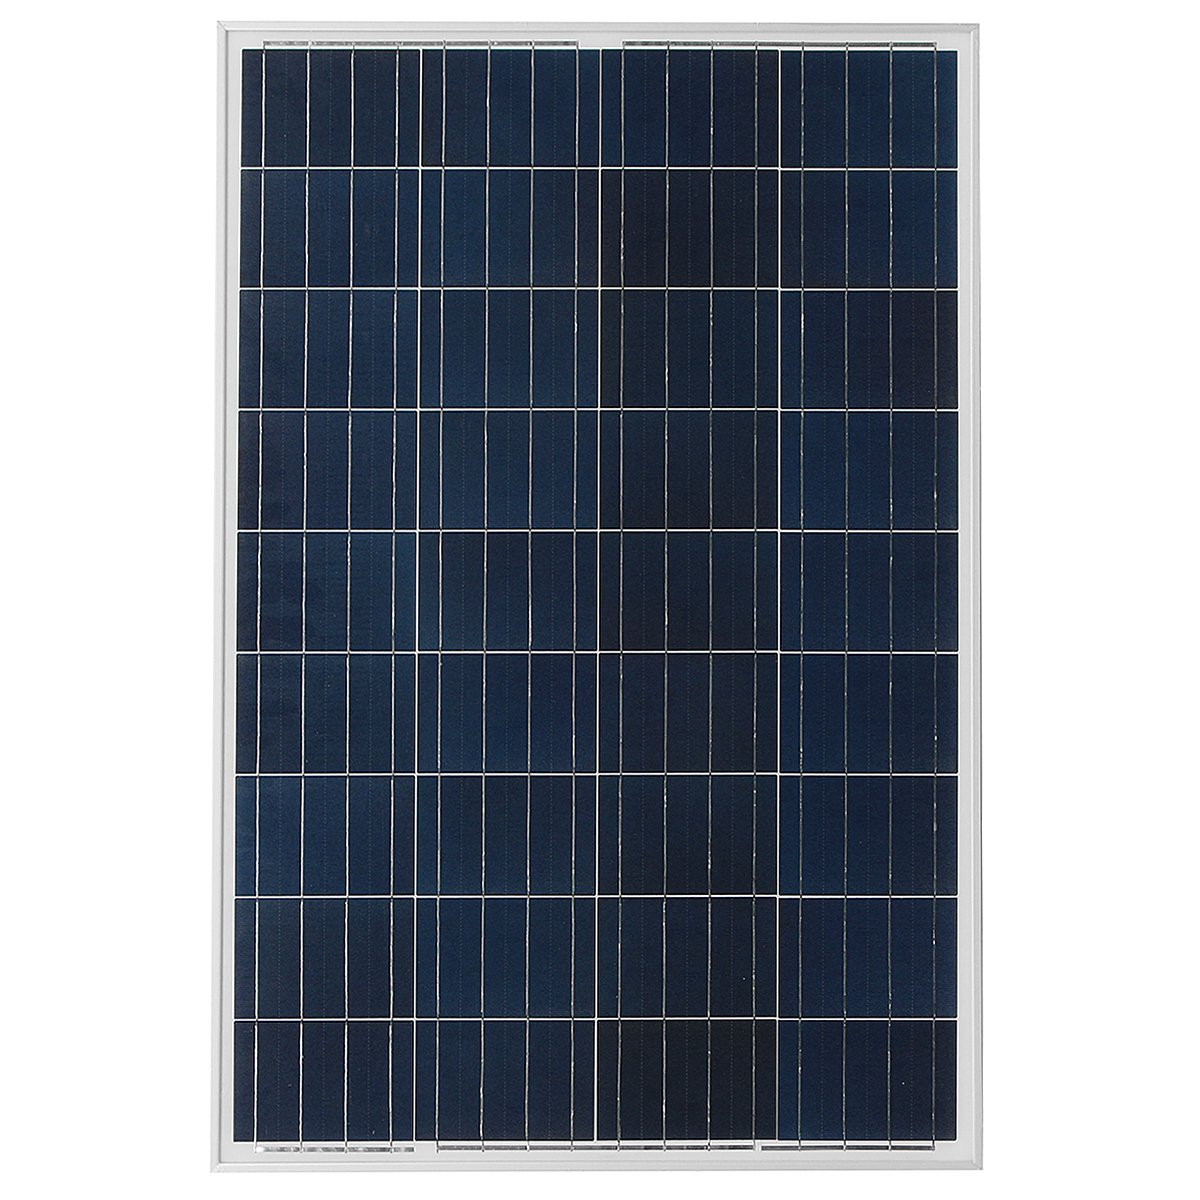 US Warehouse - P-90 90W 18V Poly Solar Panel Battery Charger for Boat Caravan Motorhome - (Color: Silver)